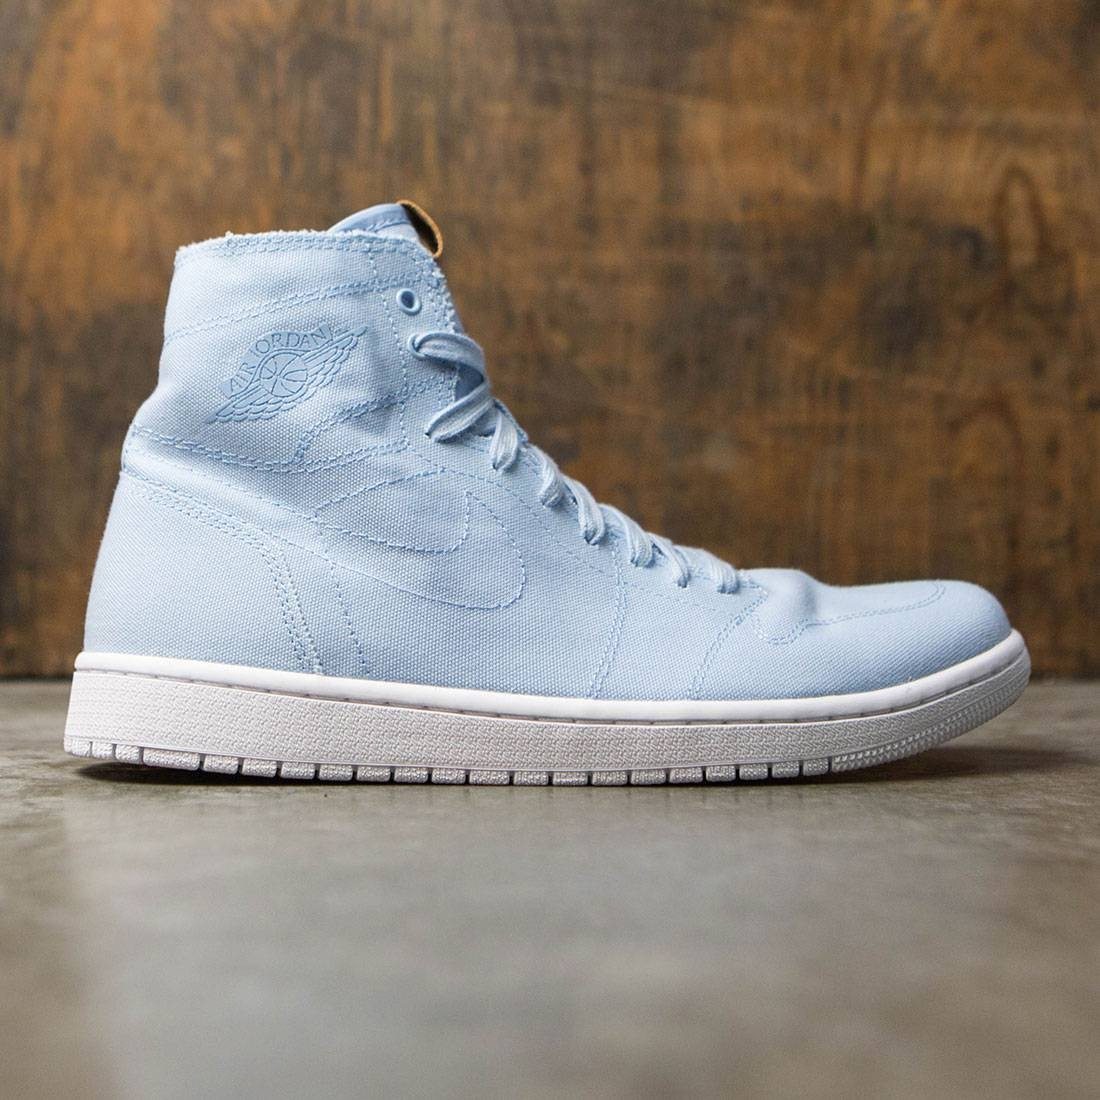 Air Jordan 1 Retro High Decon Men (ice blue / white-vachetta tan)